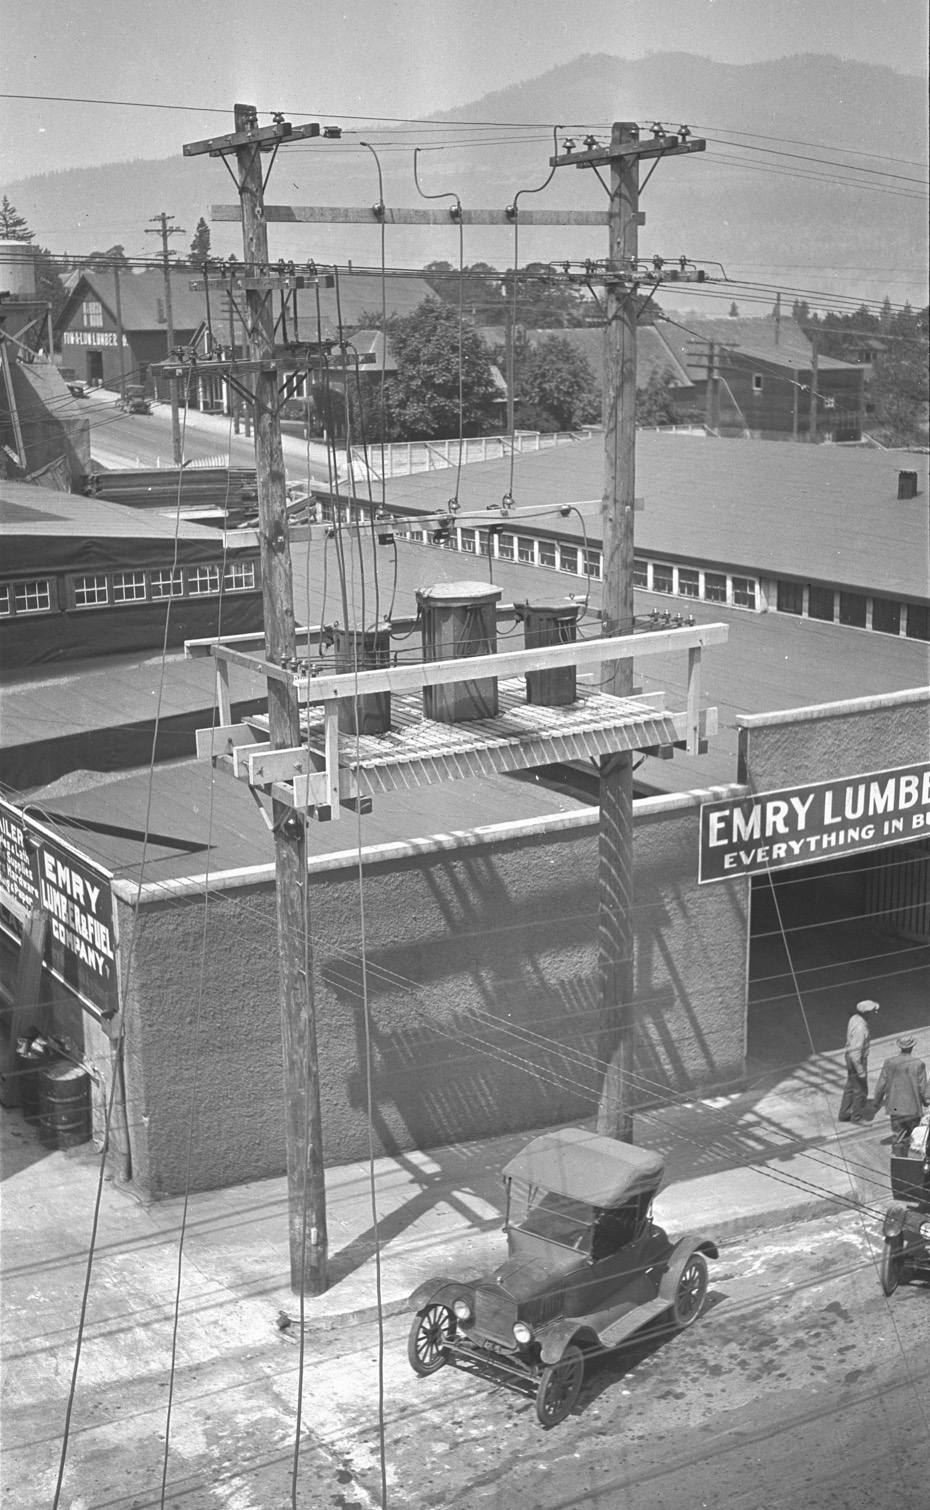 Emry Lumber and Fuel Company